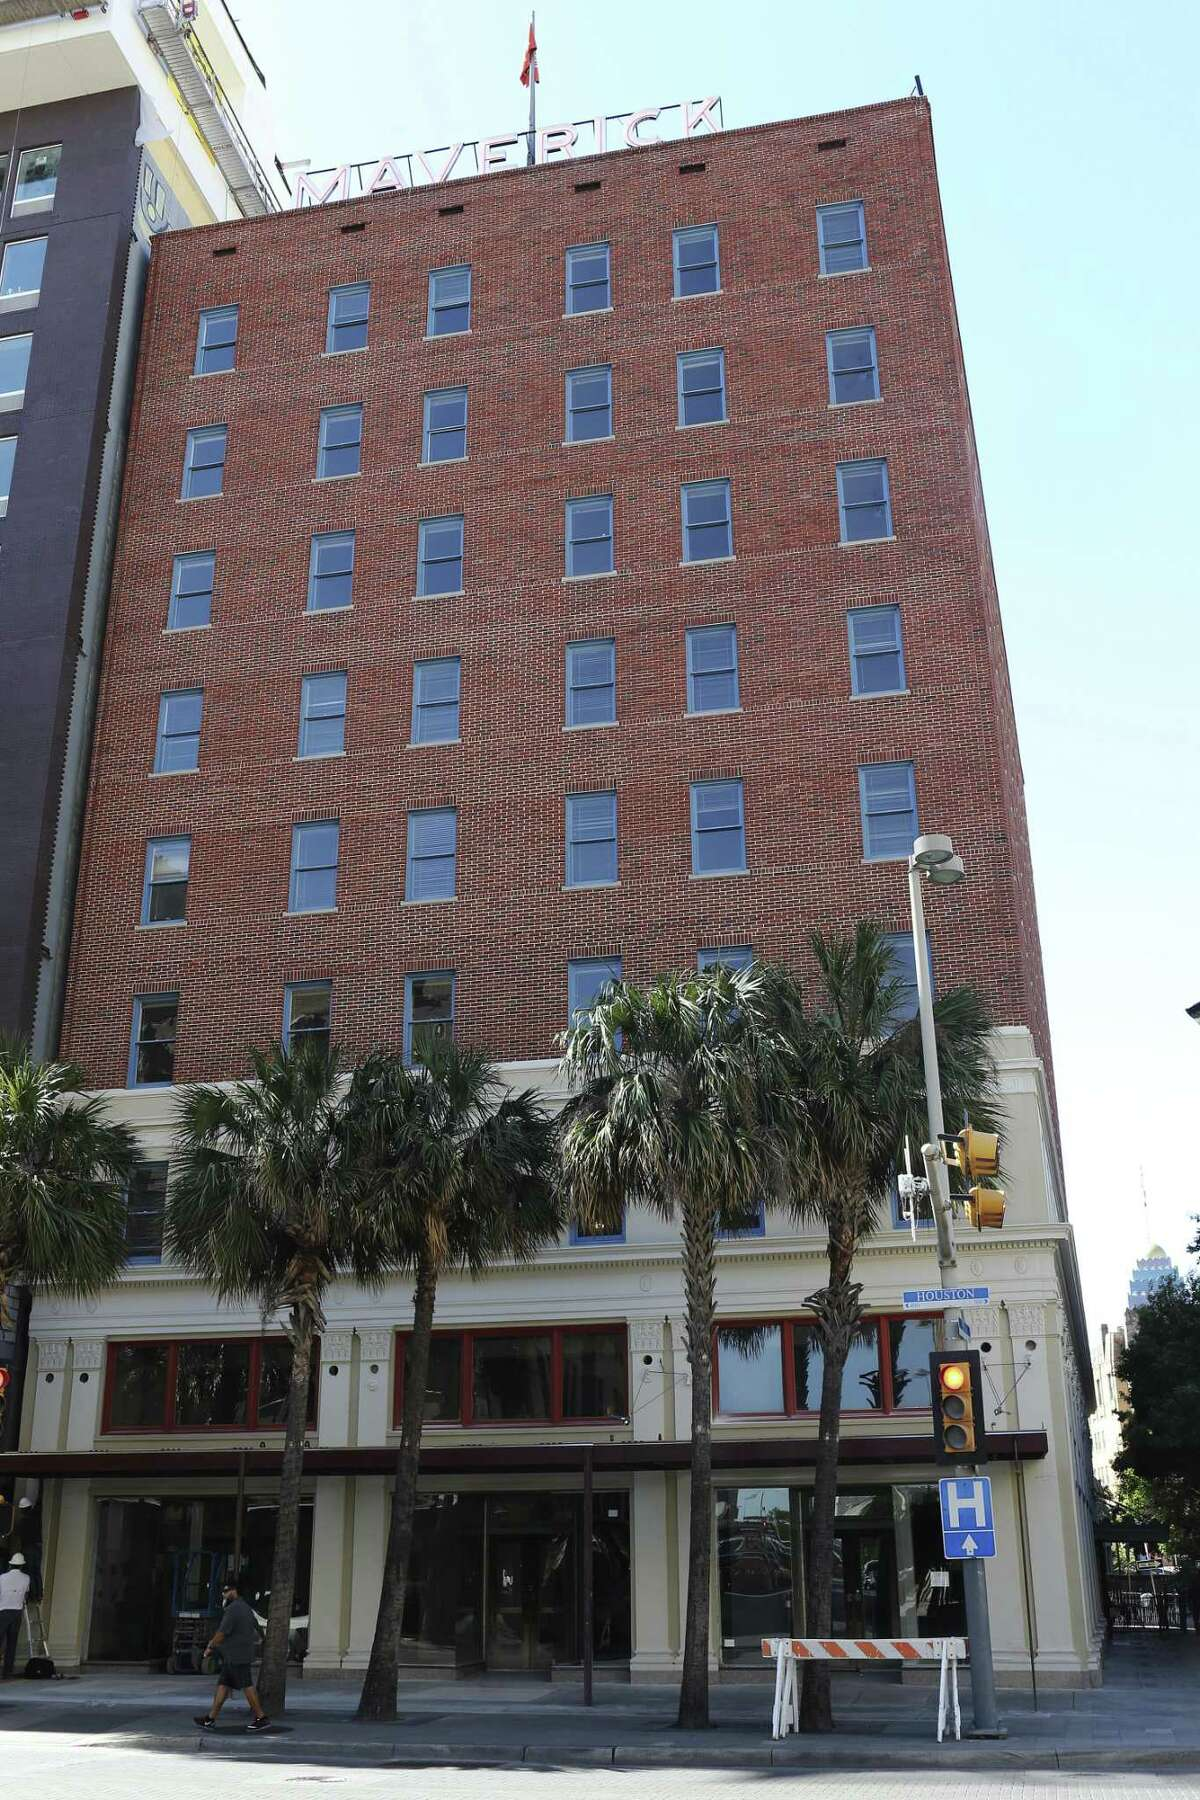 Applications for tenants are being taken at the renovated Maverick Building. The historic 1922 structure has recently undergone an extensive renovation and is offering studio, one- and two-bedroom apartments.